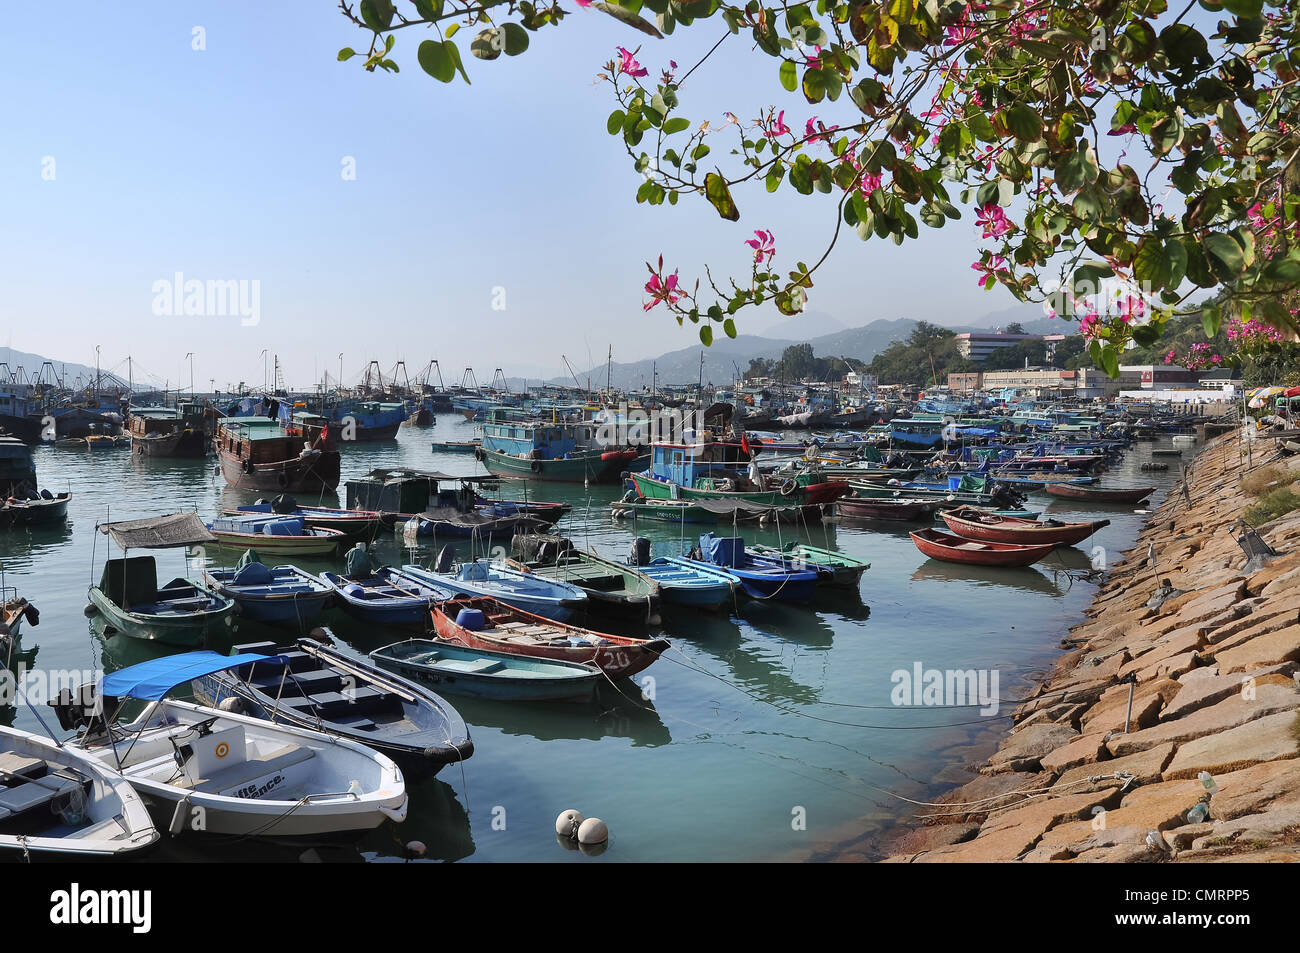 Cheung Chau harbour, Hong Kong. One of the most popular of Hong Kong's outlying islands. - Stock Image